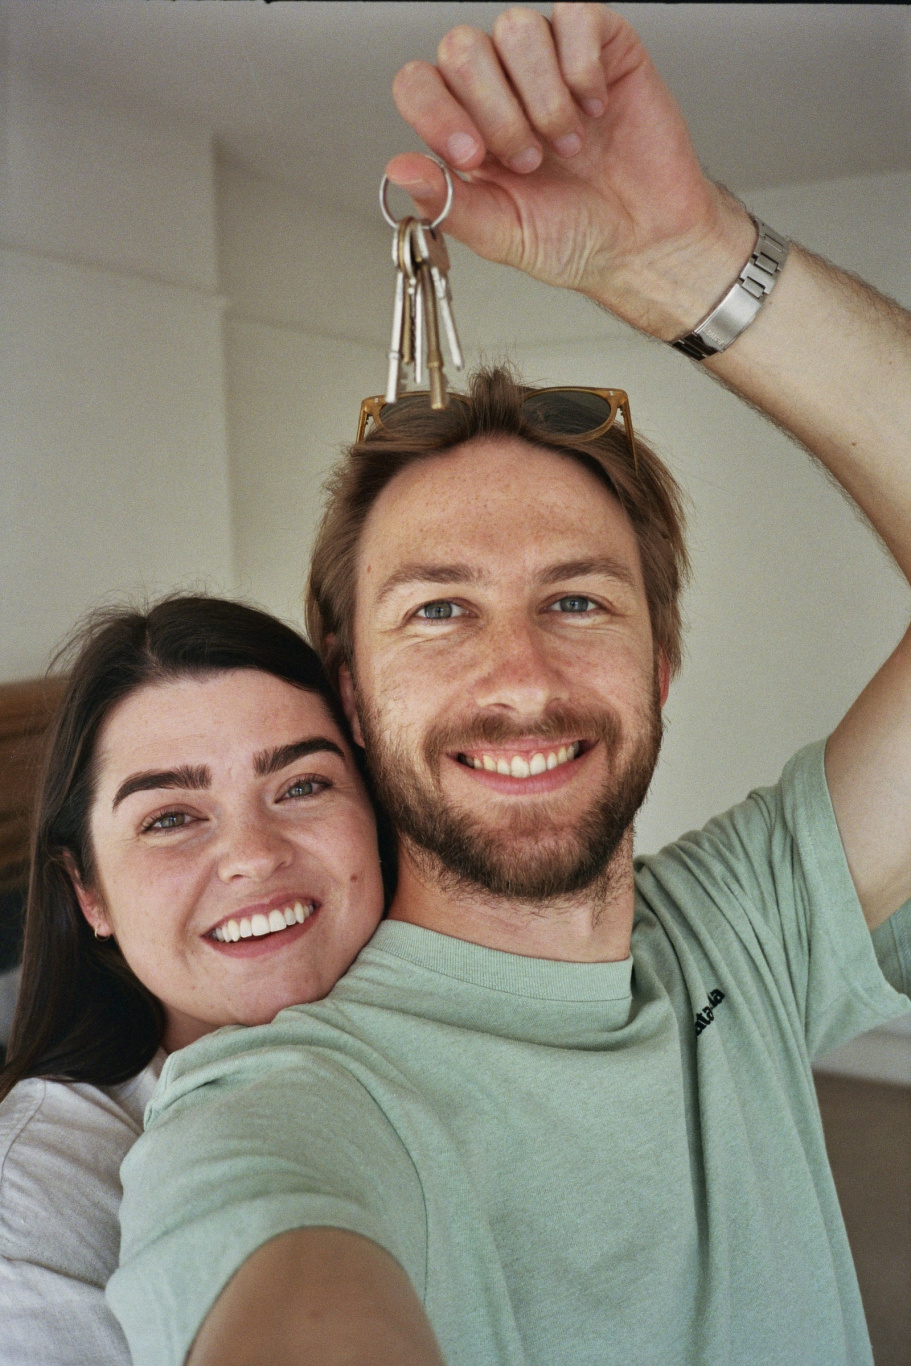 A photo of Anna and Mark with the keys, before they passed them on to the new owners.